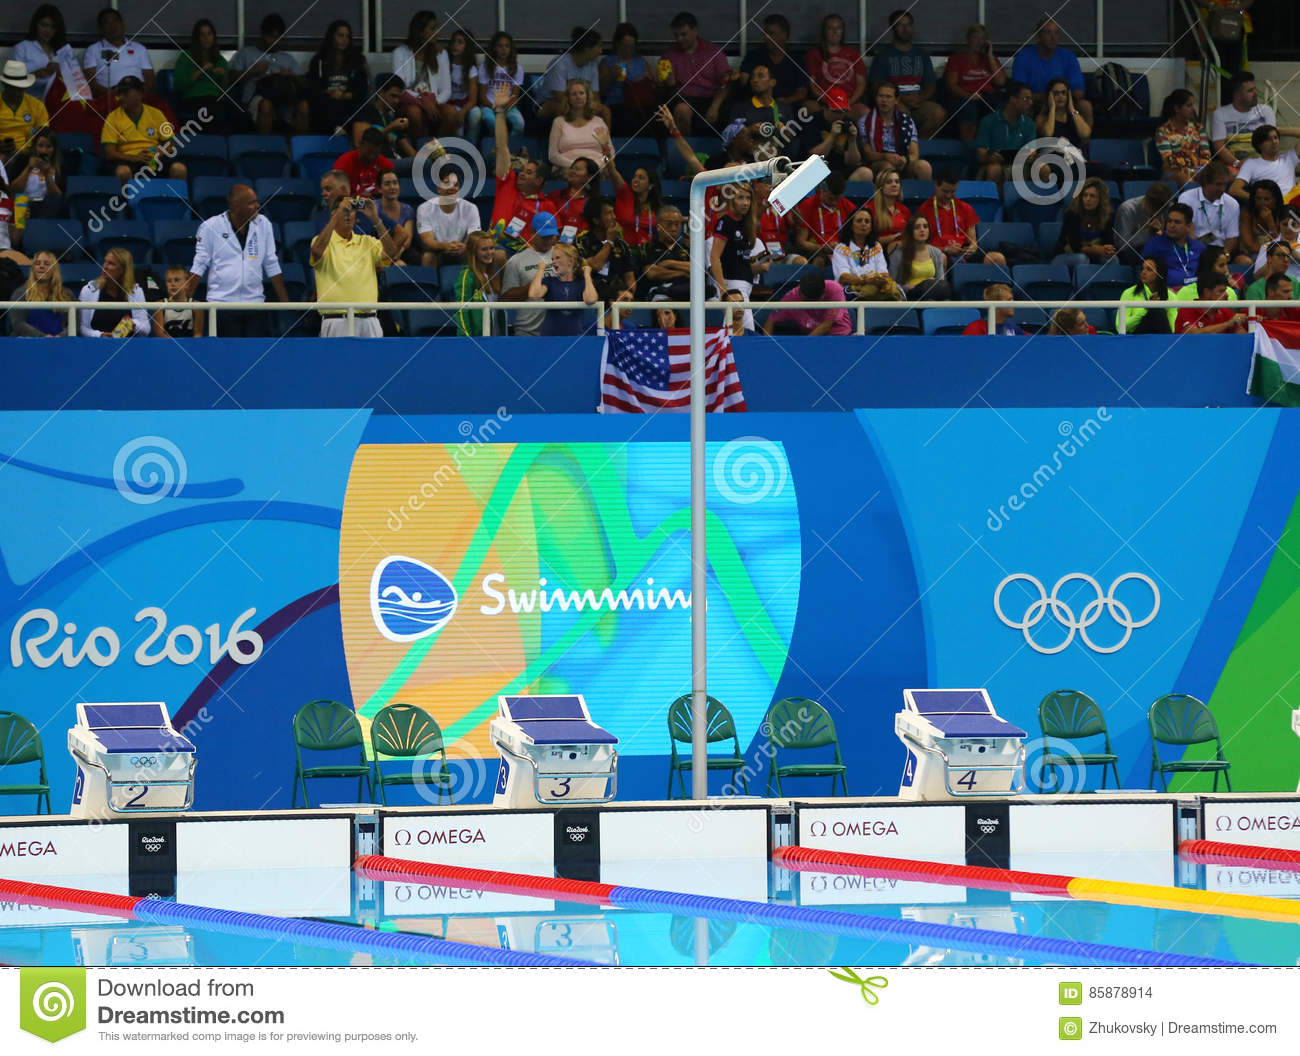 Swimming pool at Olympic Aquatic Center during Rio 2016 Olympic Games